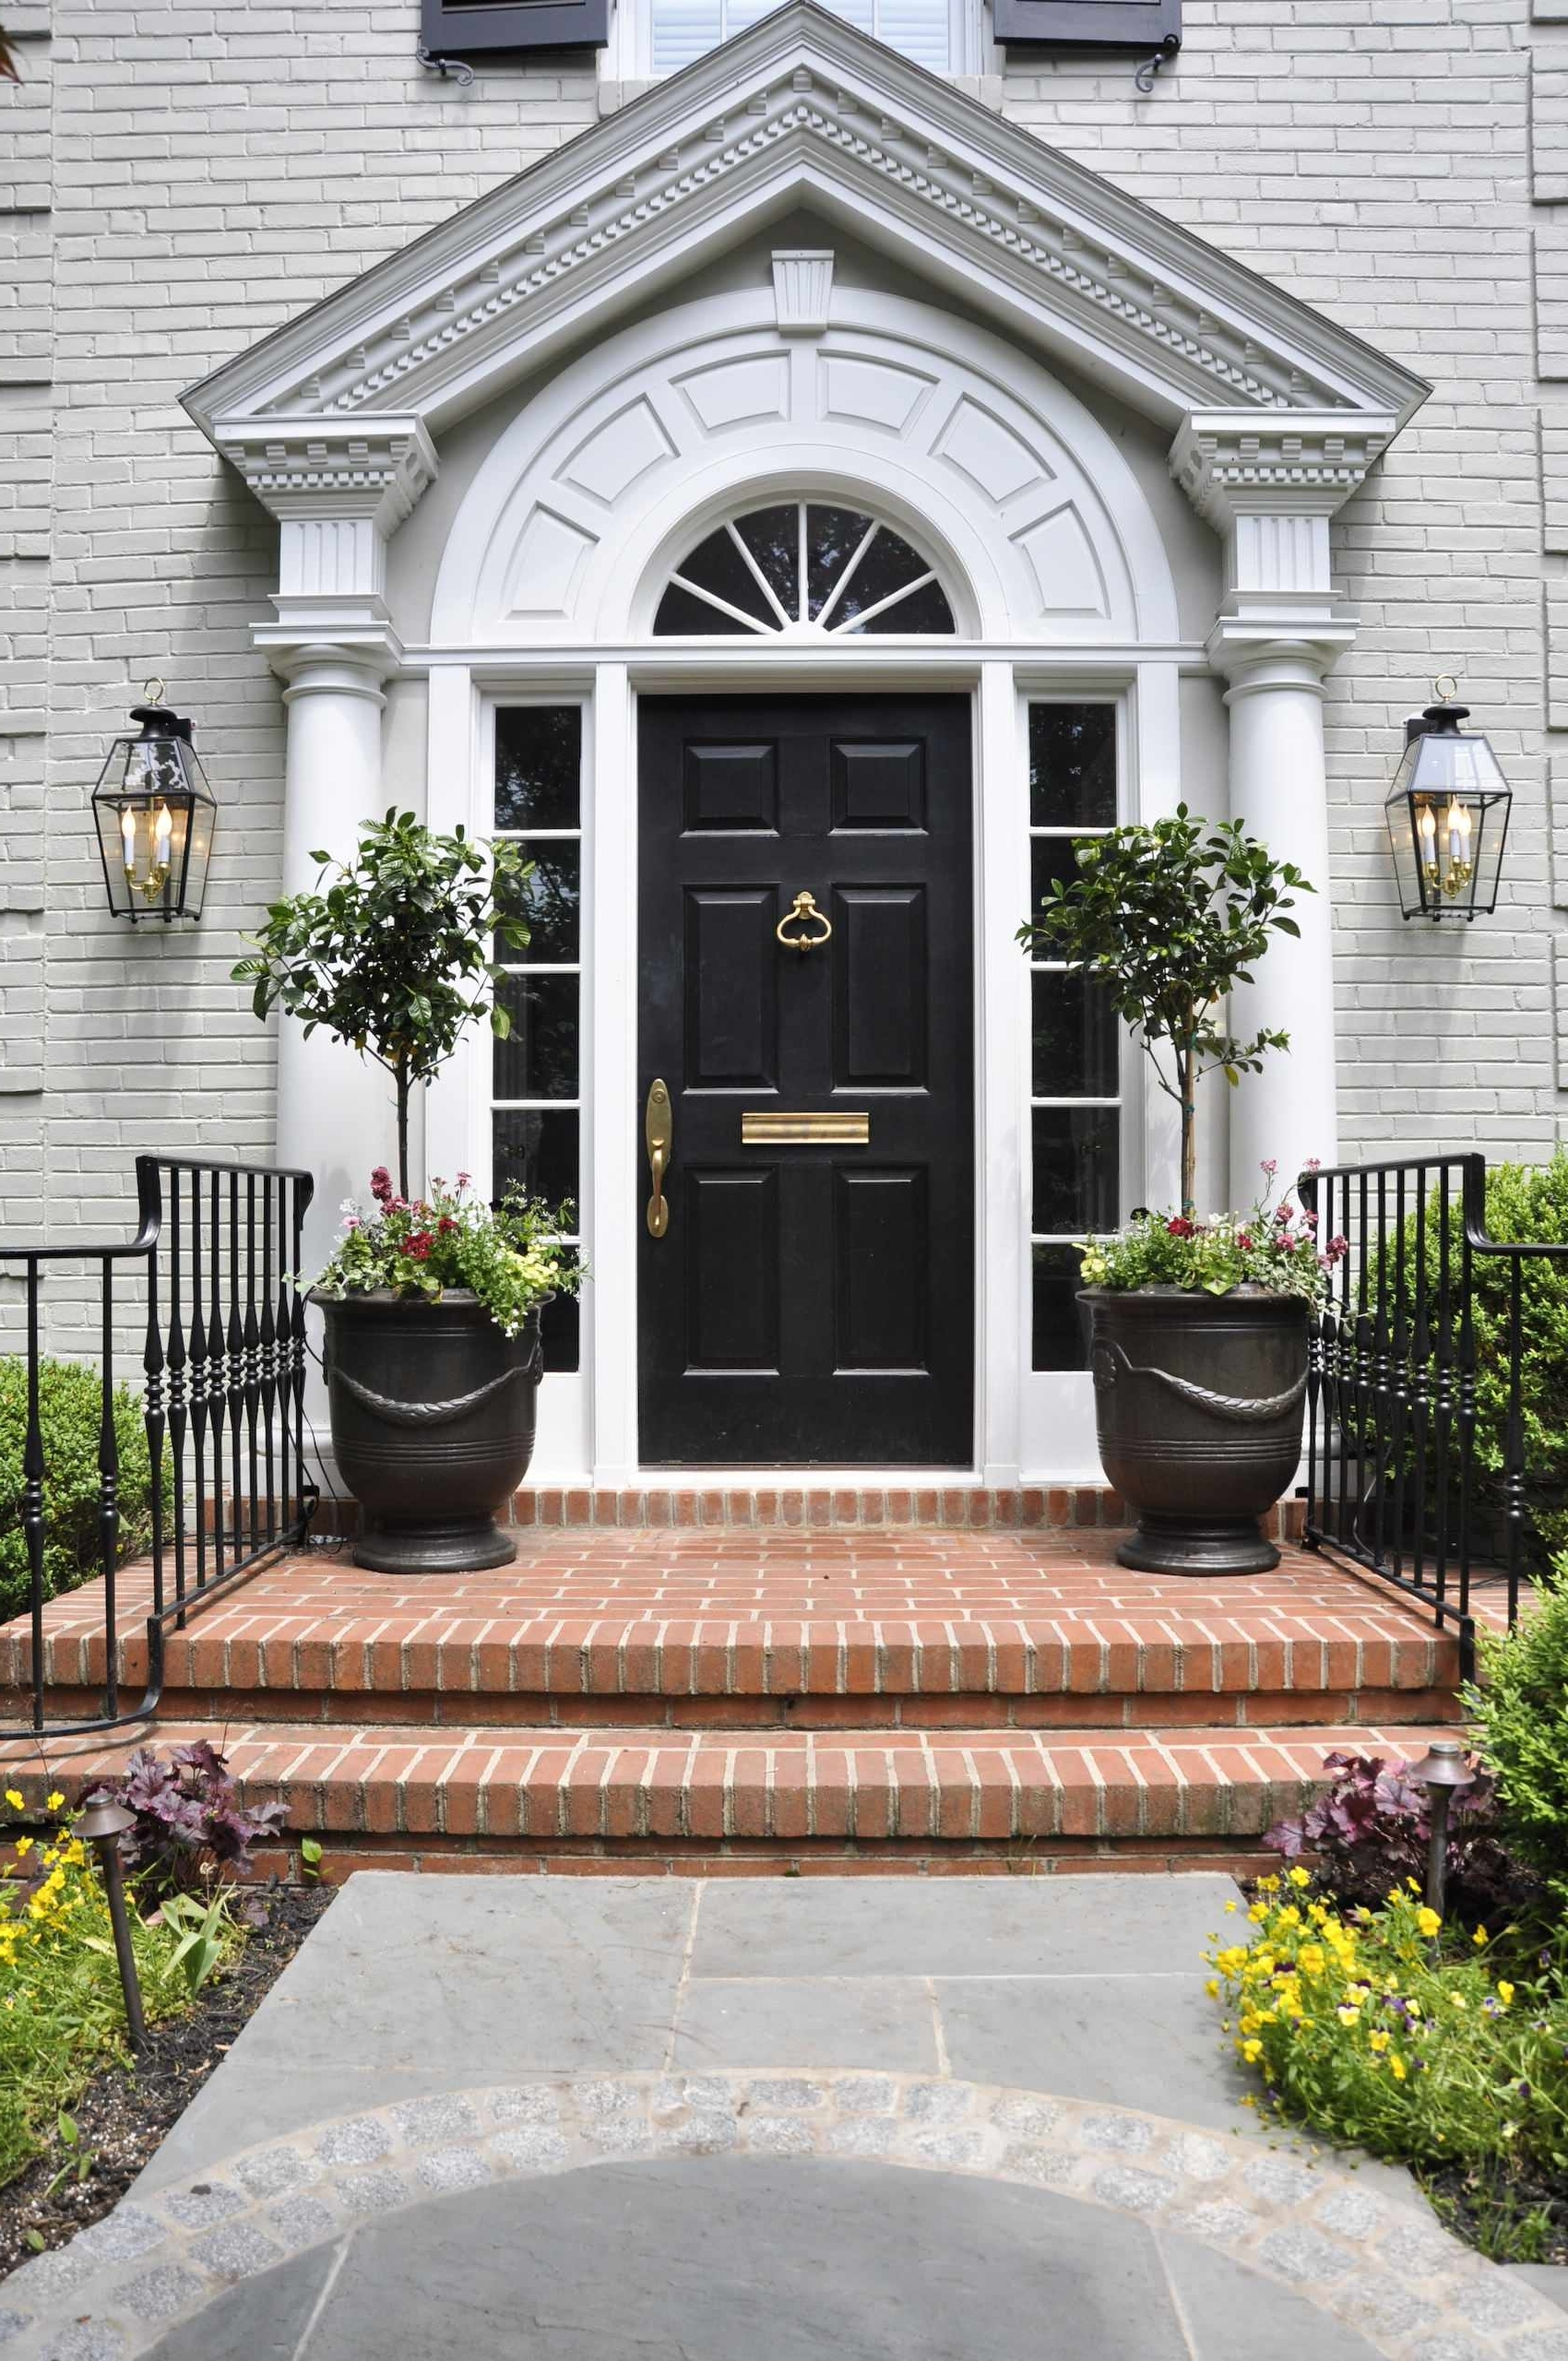 Outdoor Entrance Lanterns Pertaining To Latest Exterior Design: Decorating With Lanterns And Entrance Pots Also (Gallery 7 of 20)